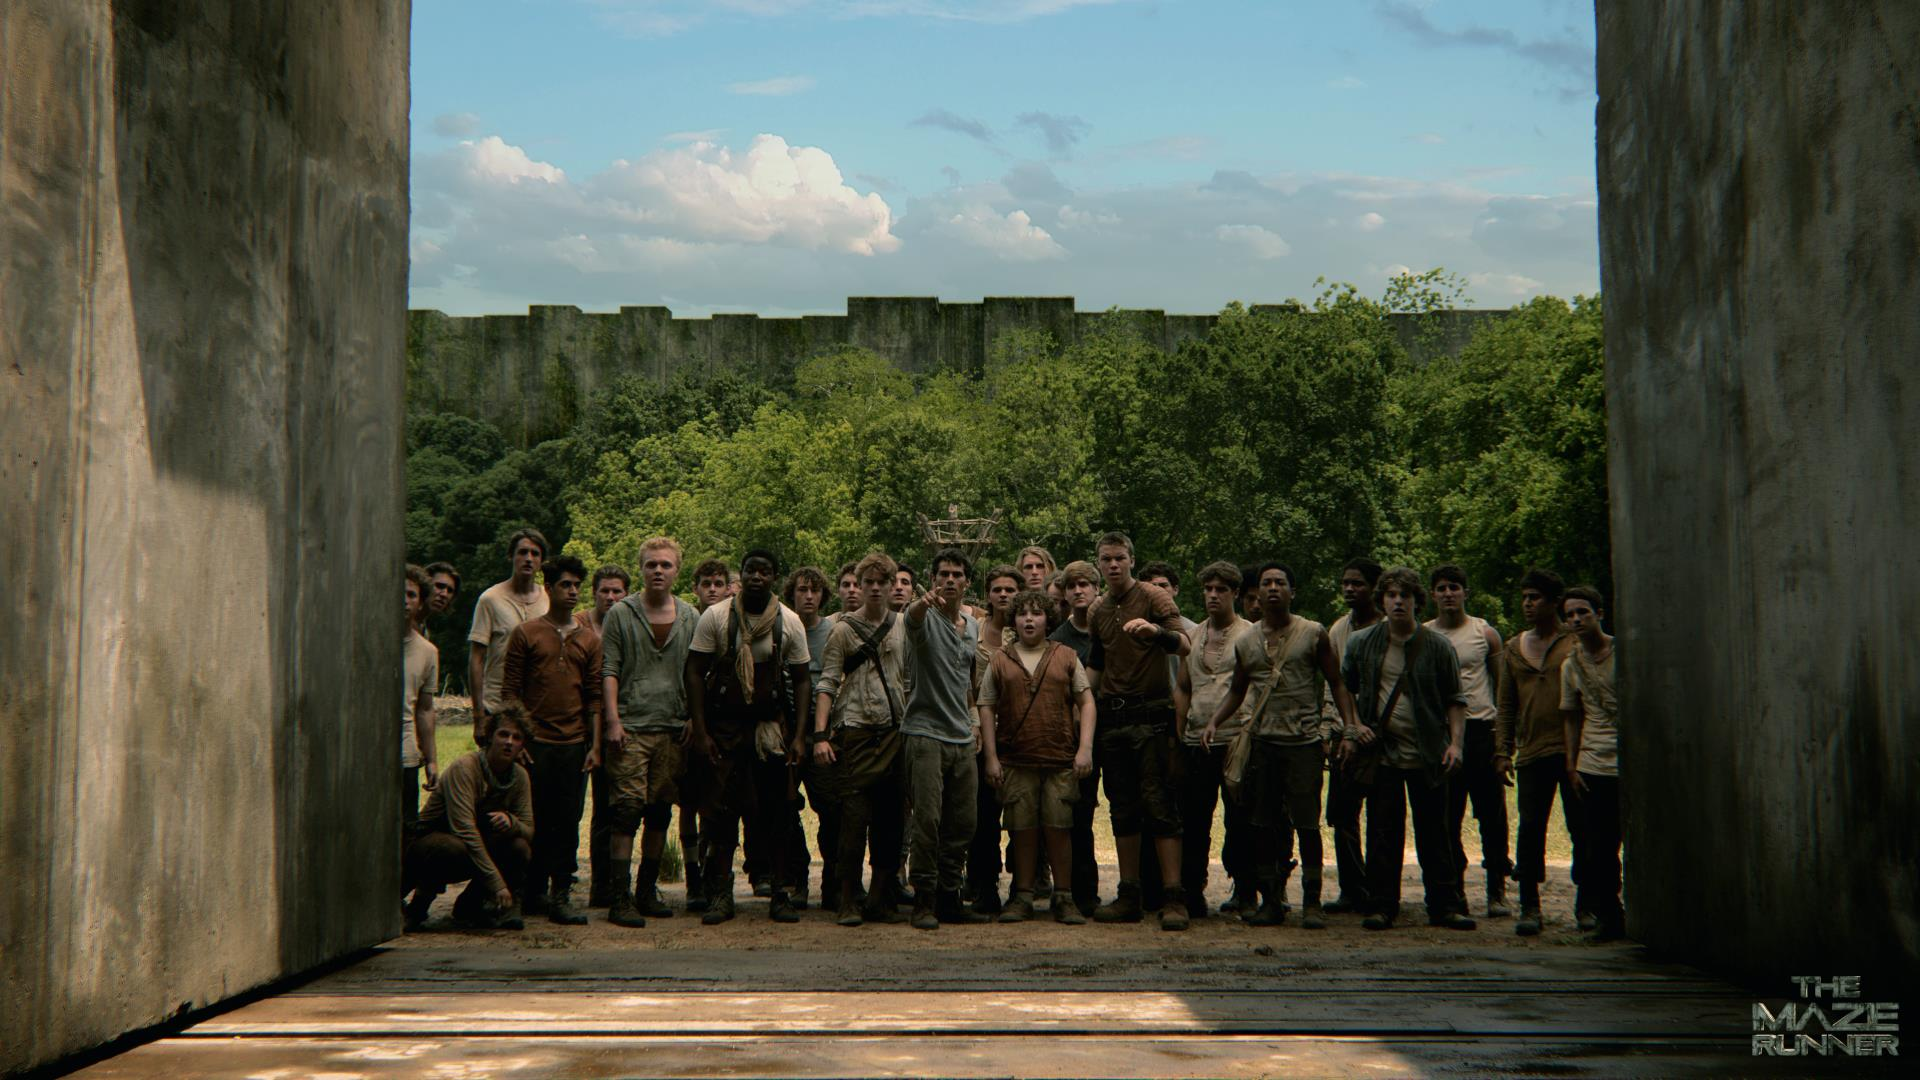 the-maze-runner-1345-1375-hd-wallpapers-1